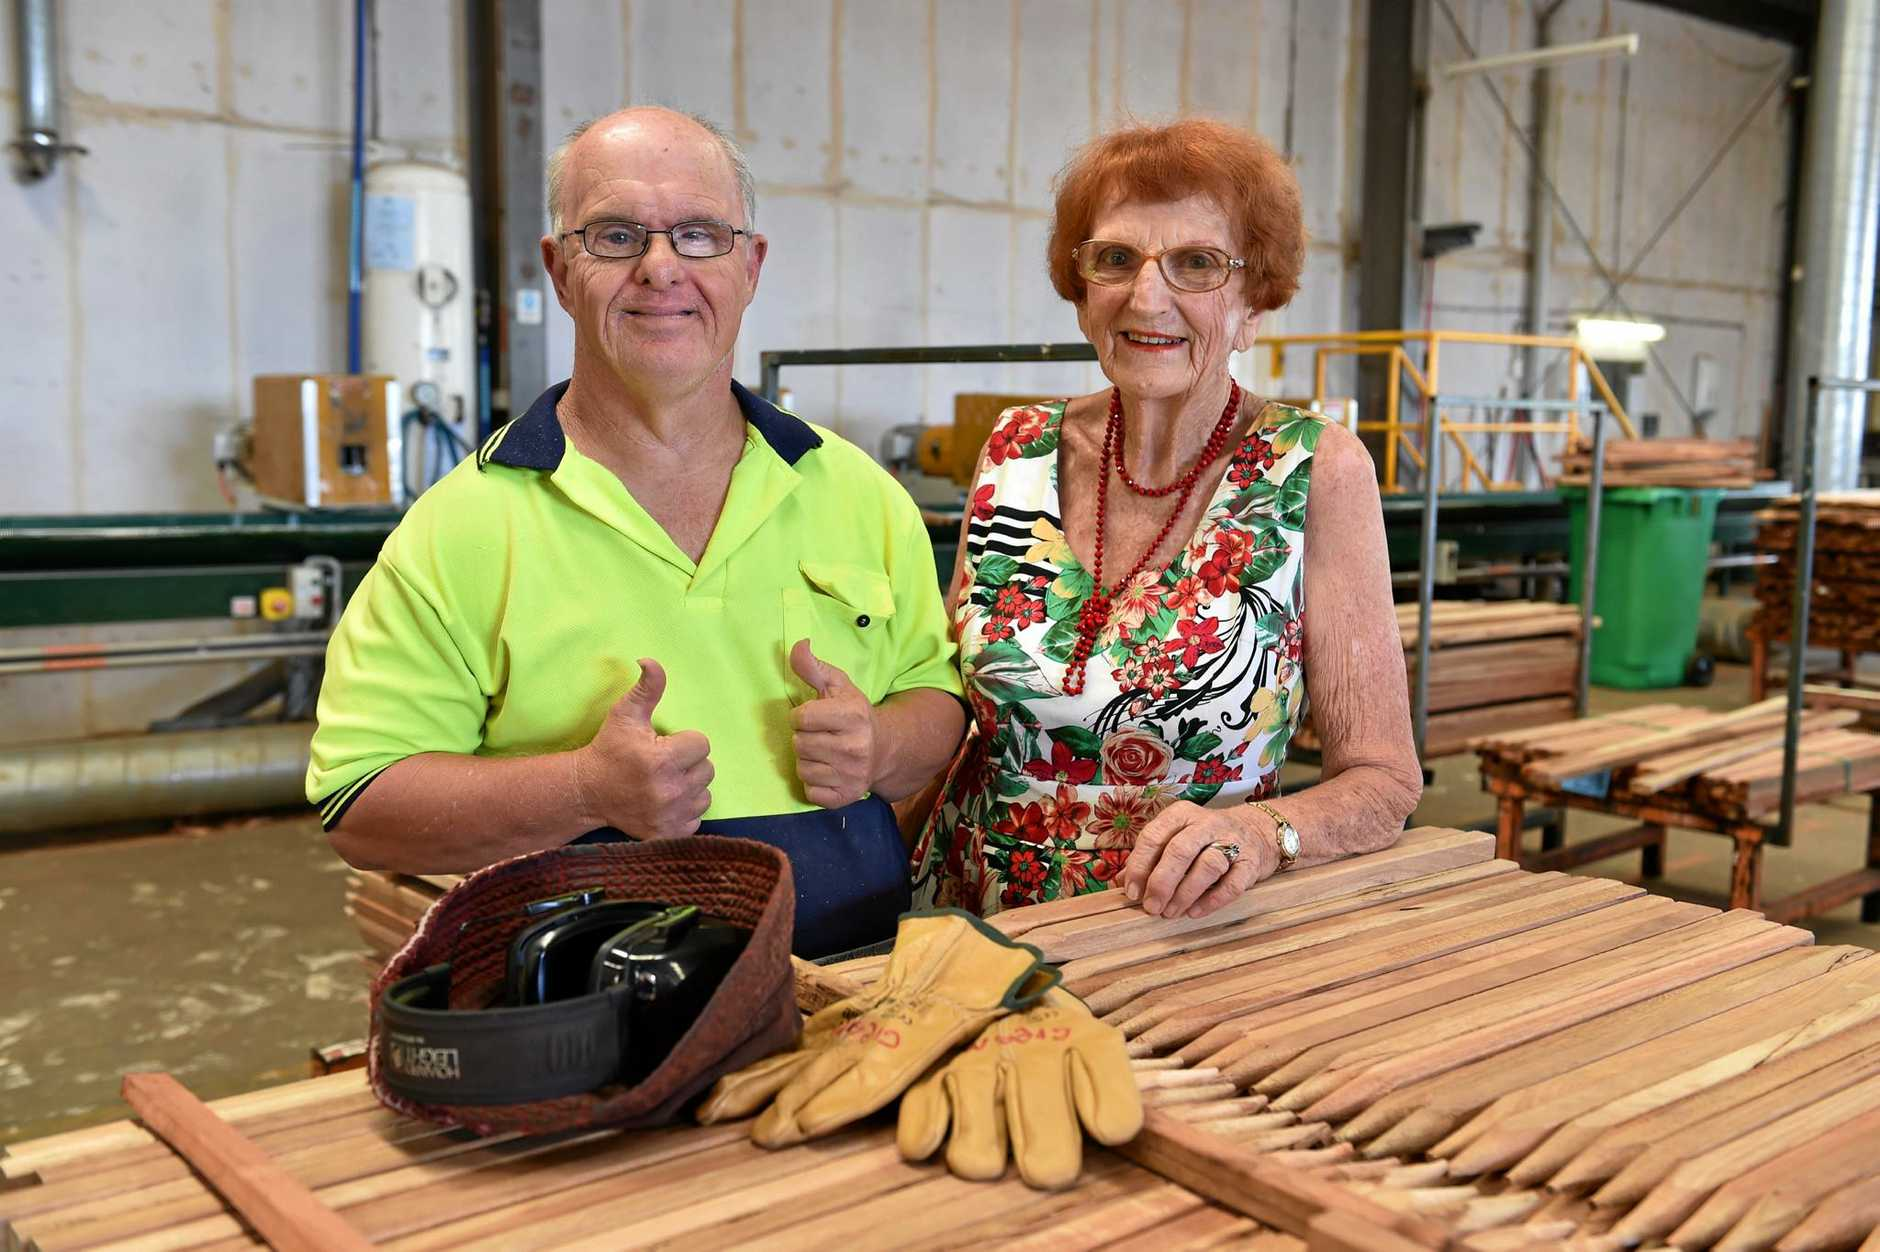 Joan Massingham has been volunteering at the Endeavour Foundation in Maryborough for 50 years. Pictured with her son Greg.